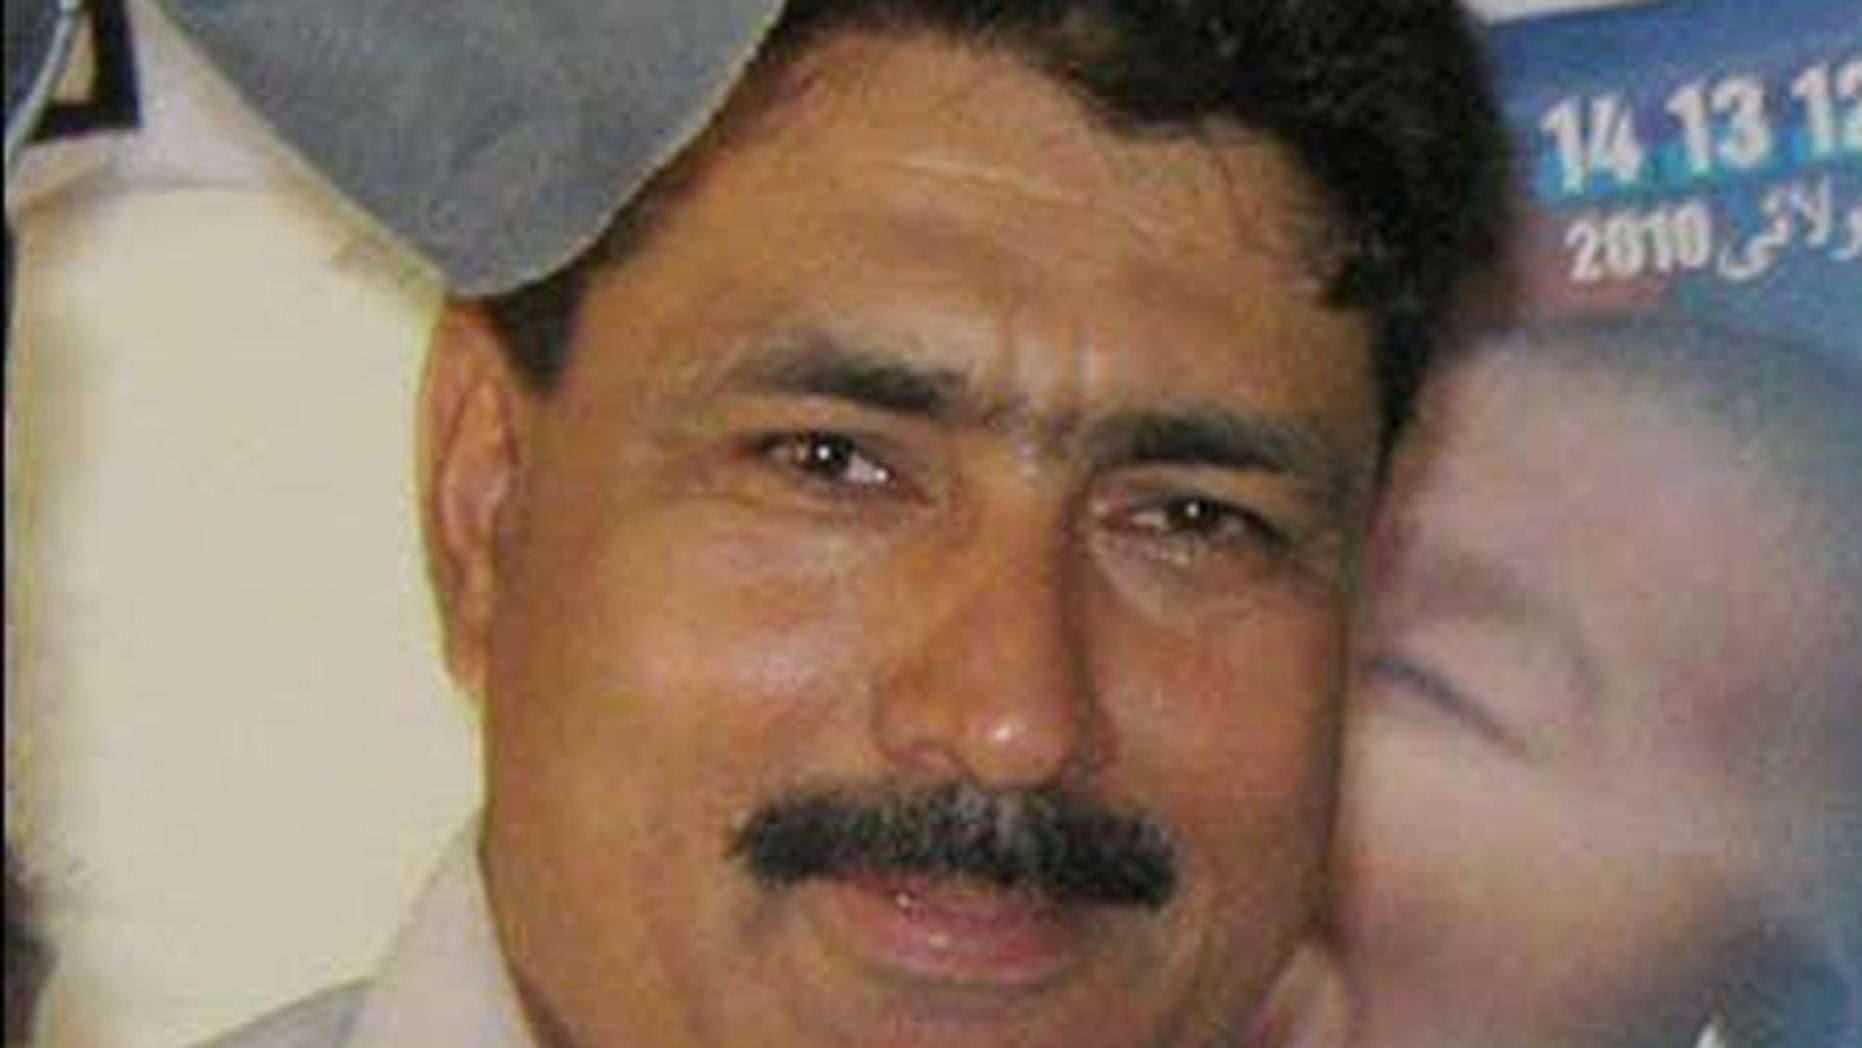 Shakeel Afridi helped the CIA track Usama bin Laden, but has been imprisoned in Pakistan ever since.